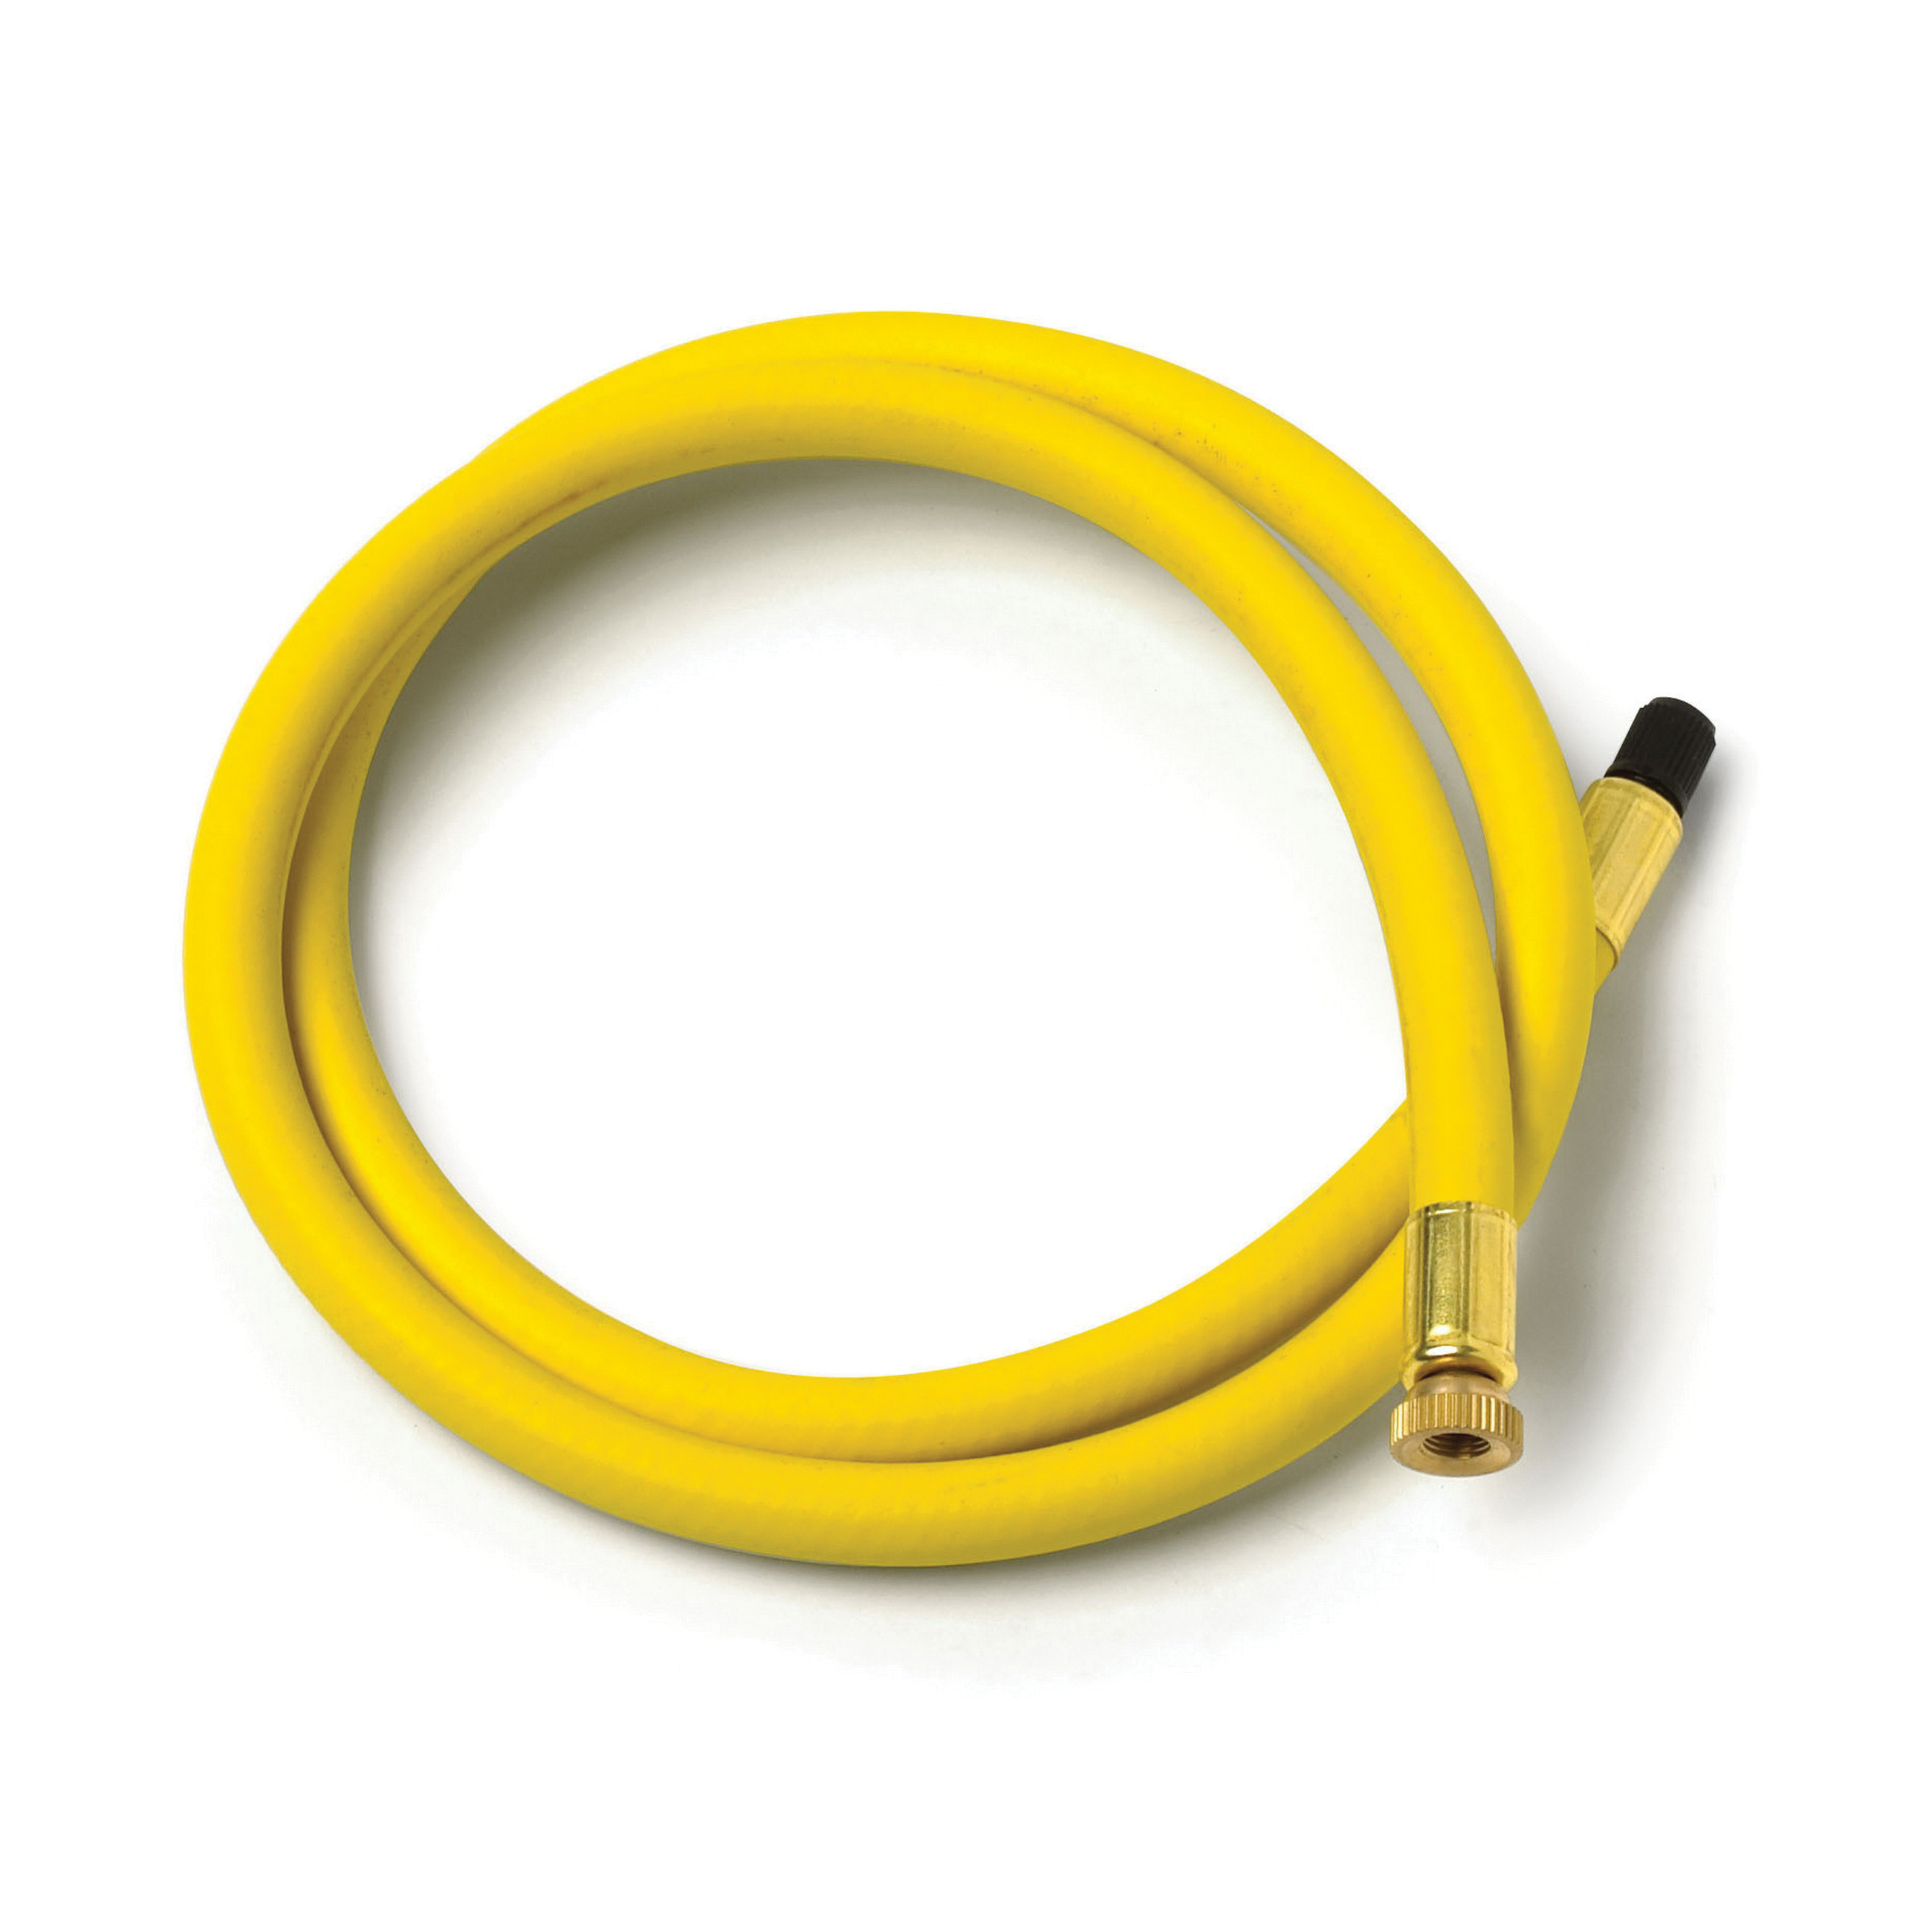 Cherne® 274038 Extension Hose, For Use With Plug Up to 15 in, 0 to 100 psi, 3/16 in Hose ID, Rubber, White